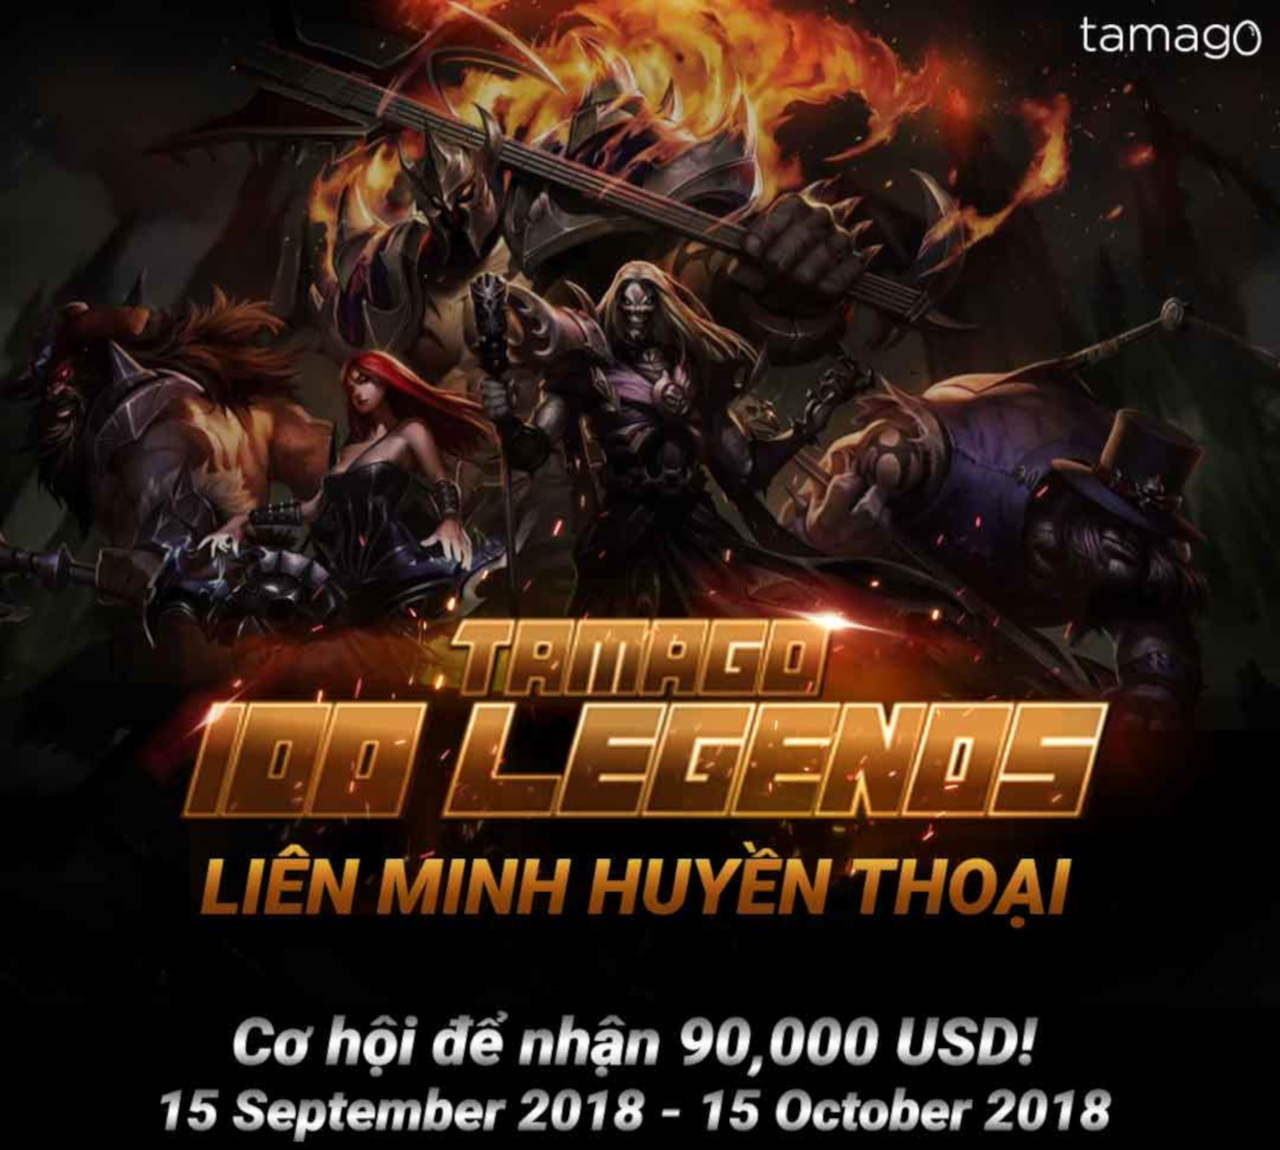 Tamago 100 Legends